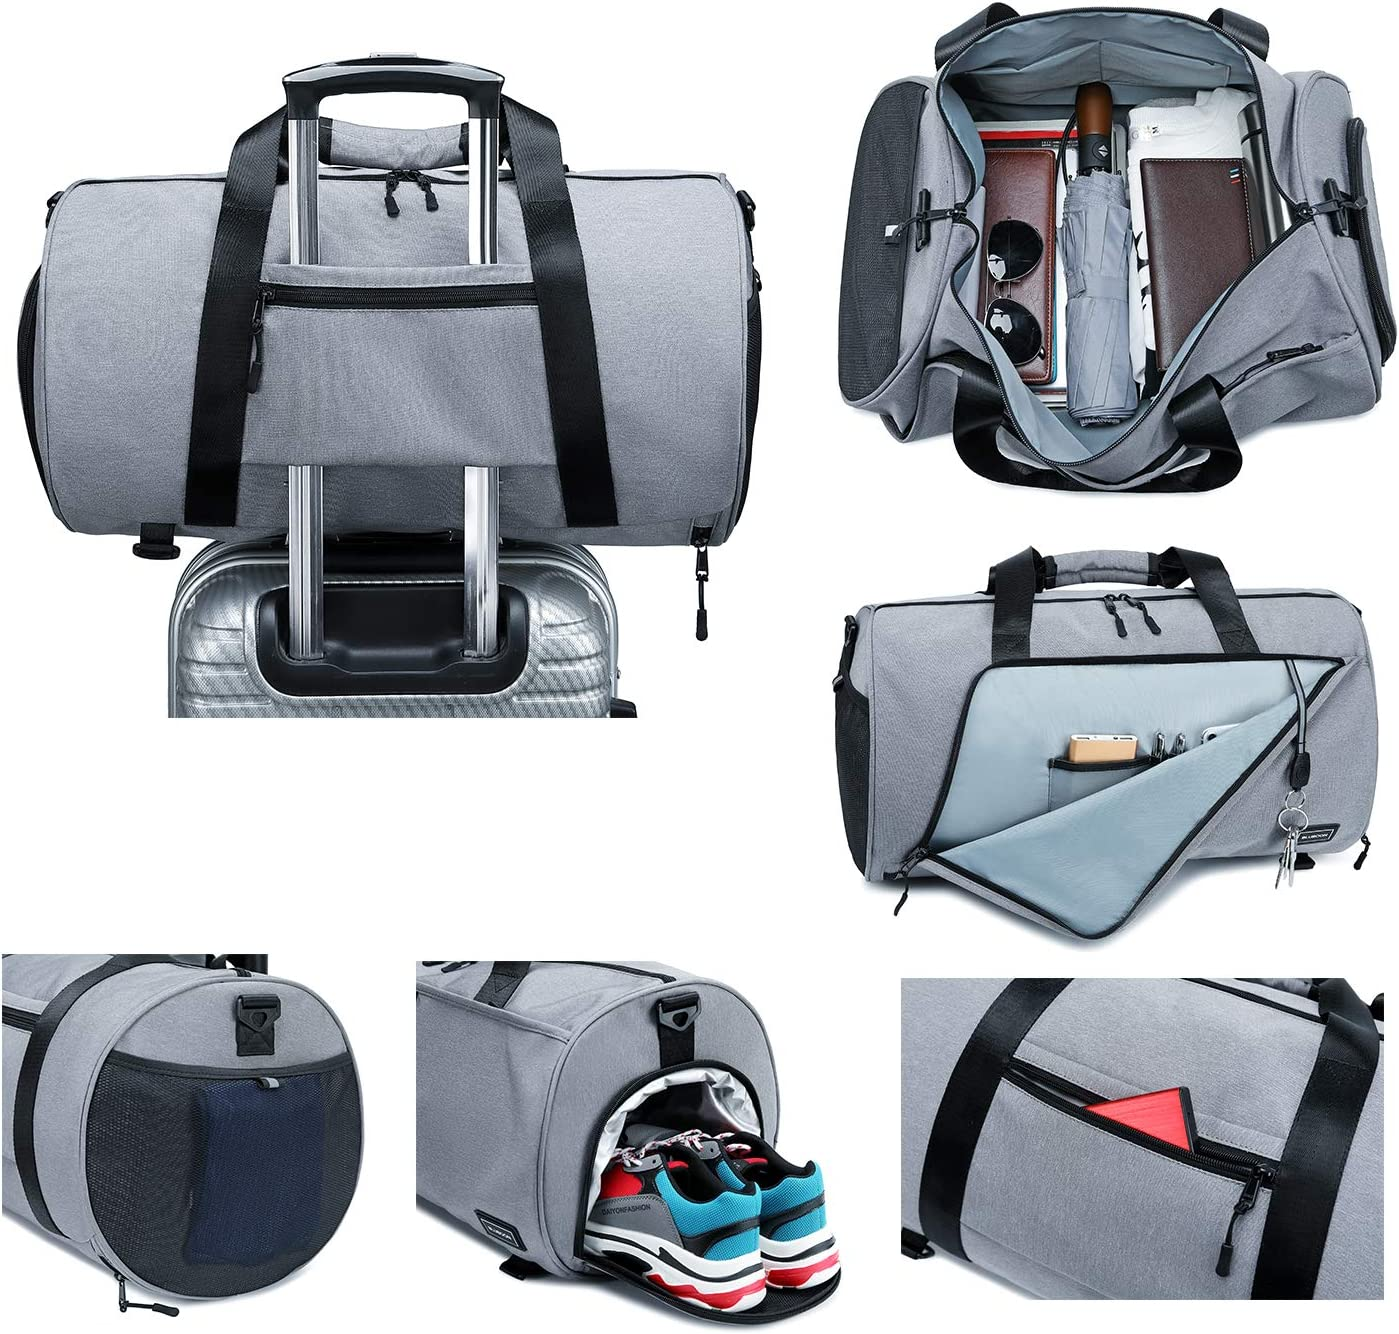 BLUBOON Sports Gym Duffel Bag With Shoe Compartment For Men and Women Oversized Travel Carry-on Luggage Tote Bag with Trolley Sleeve Grey